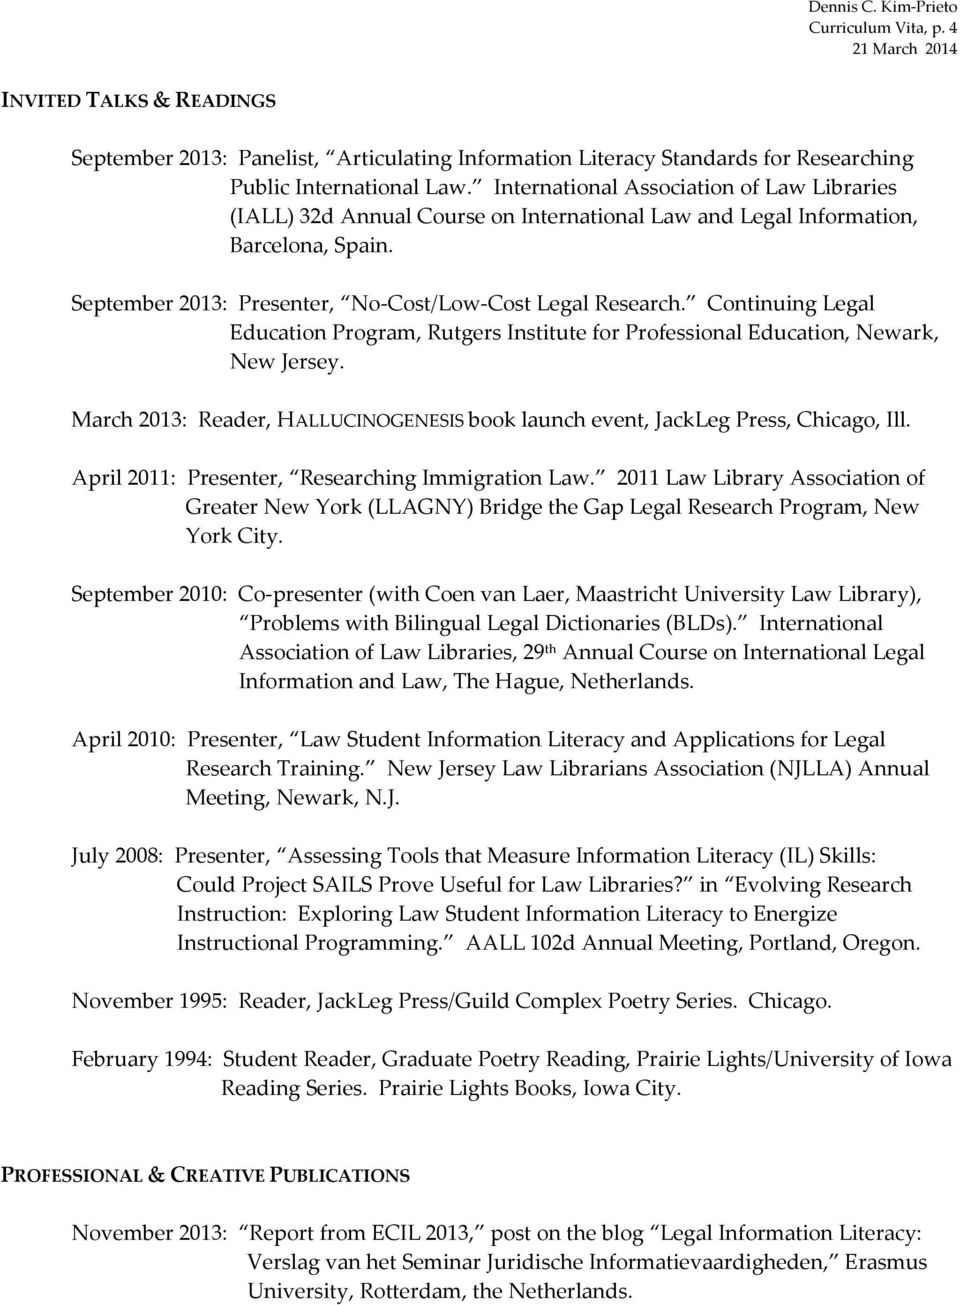 Continuing Legal Education Program, Rutgers Institute for Professional Education, Newark, New Jersey. March 2013: Reader, HALLUCINOGENESIS book launch event, JackLeg Press, Chicago, Ill.